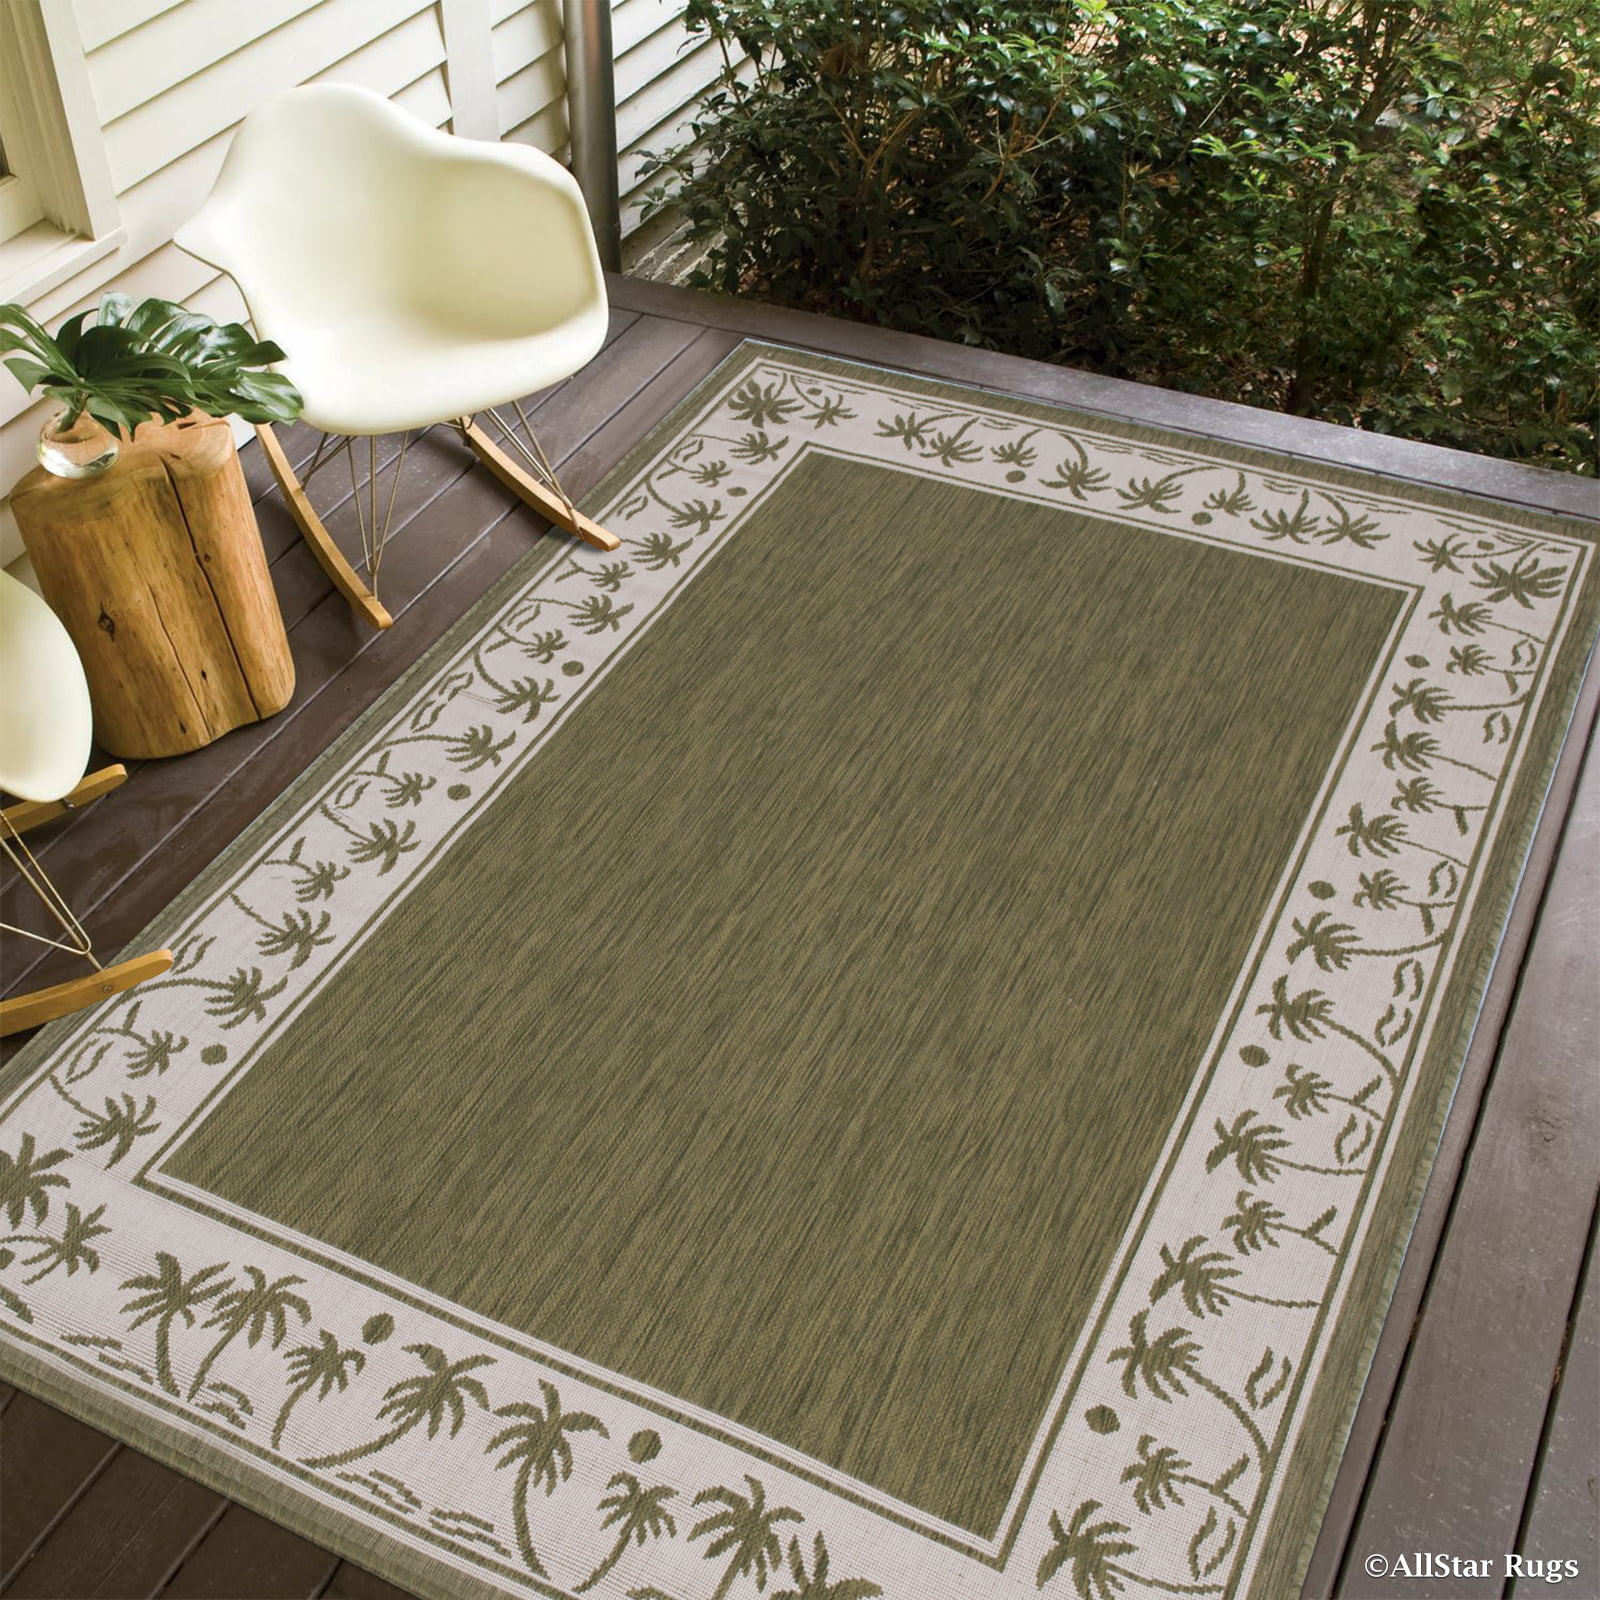 """Green Allstar Indoor Outdoor All Weather Rug with Palm Tree Patterns (4' 11"""" x 6' 12"""") by"""